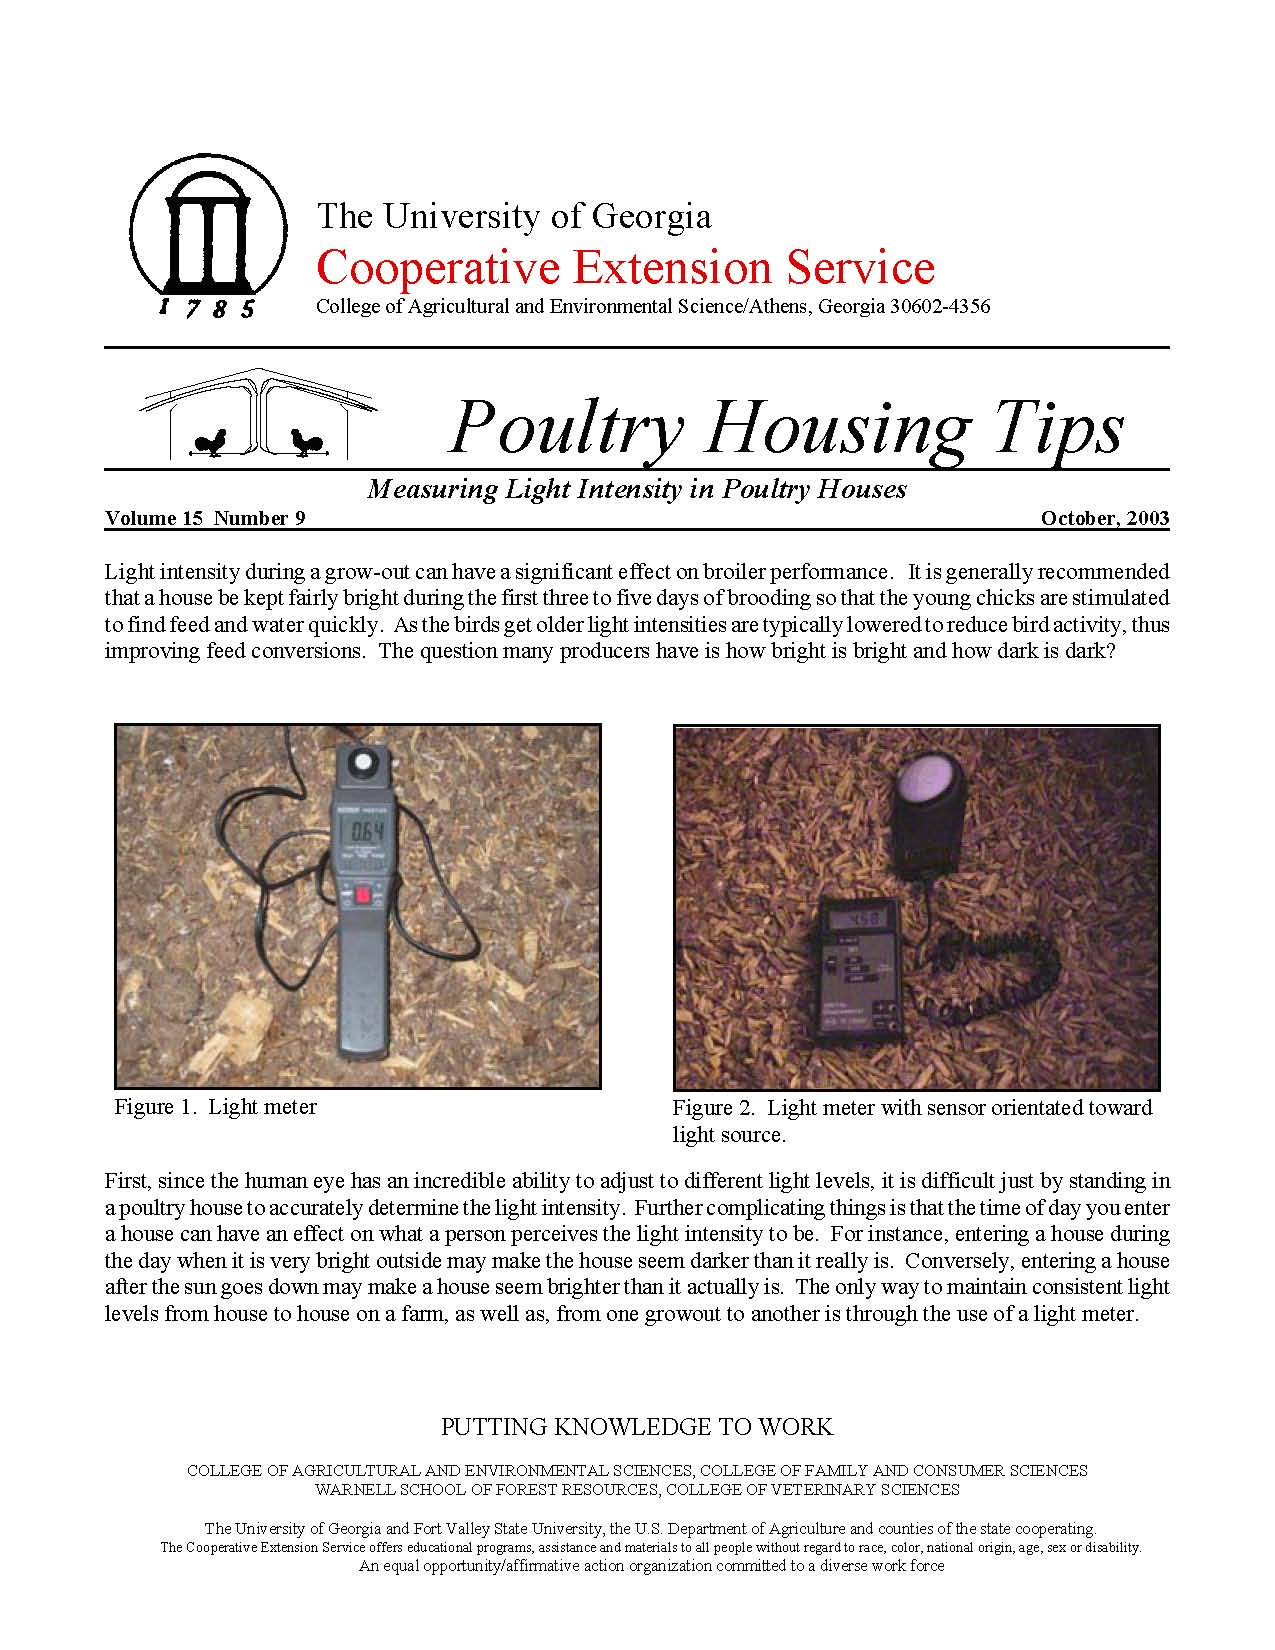 Measing Light Intensity in Poultry Houses | UGA Poultry